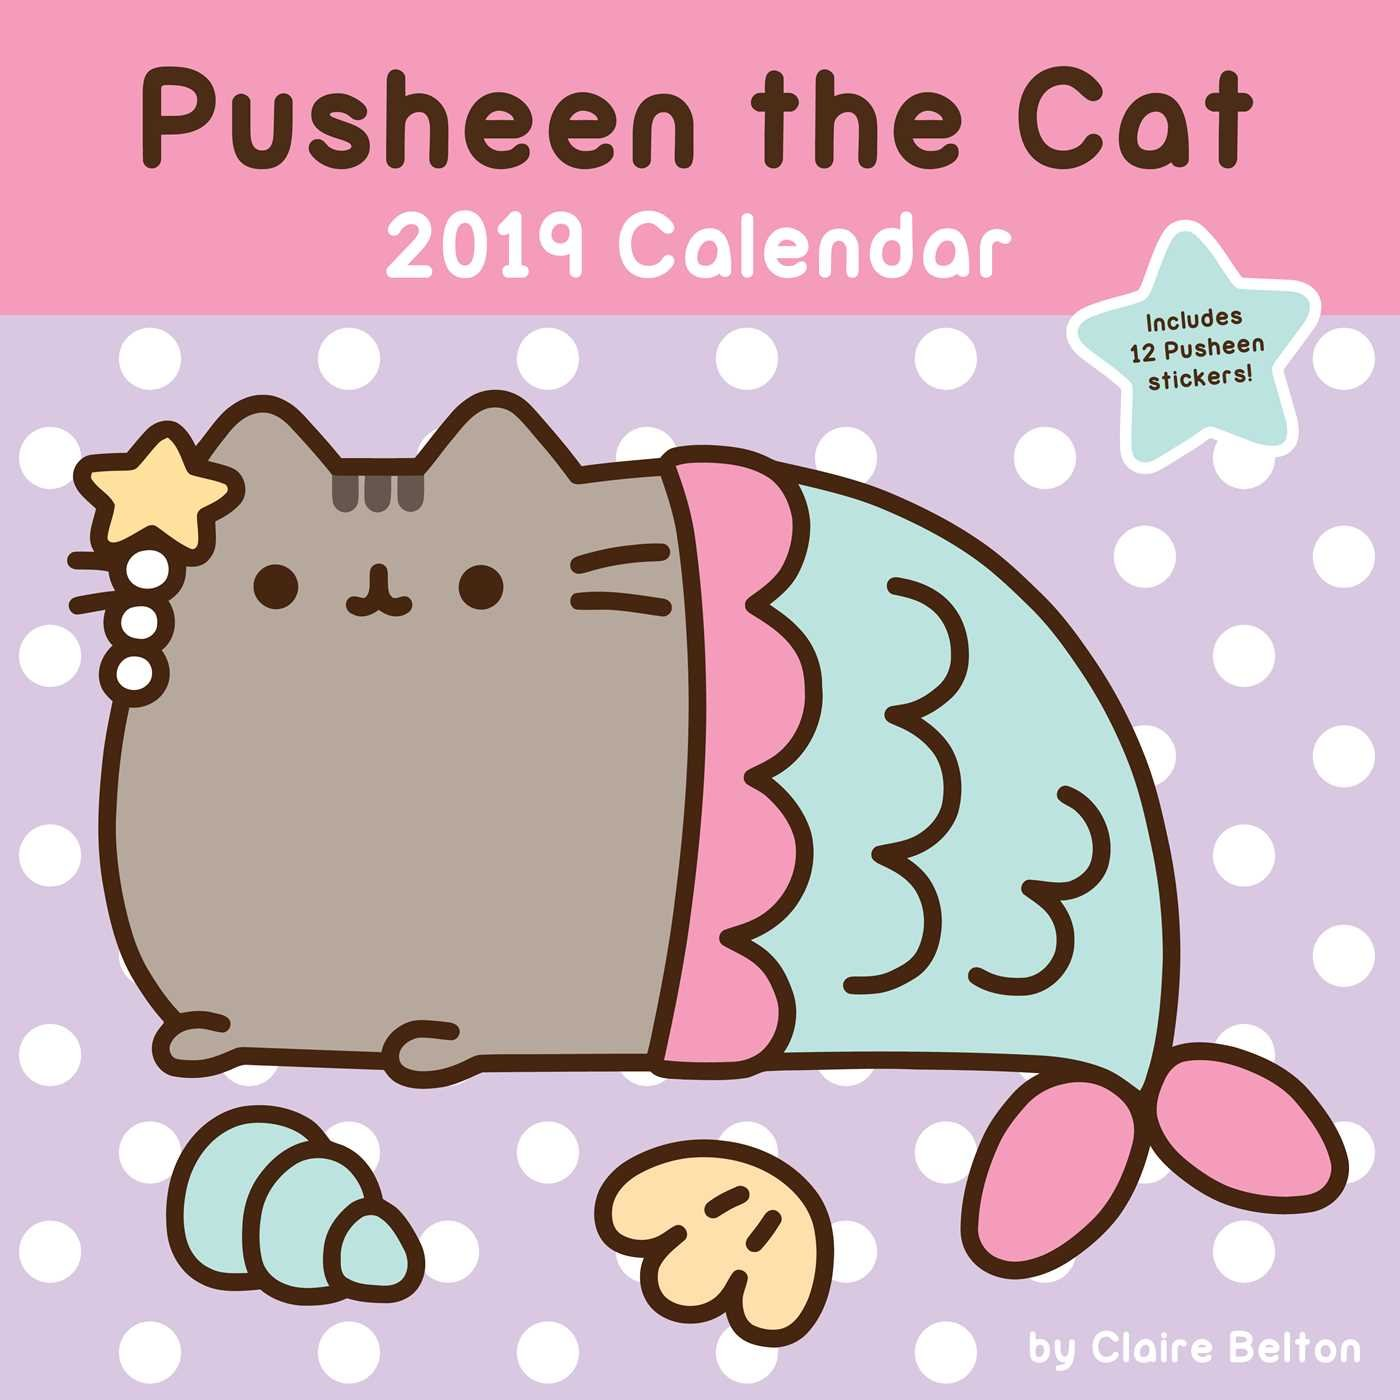 Pusheen the Cat 2019 Wall Calendar: Amazon.es: Claire Belton ...